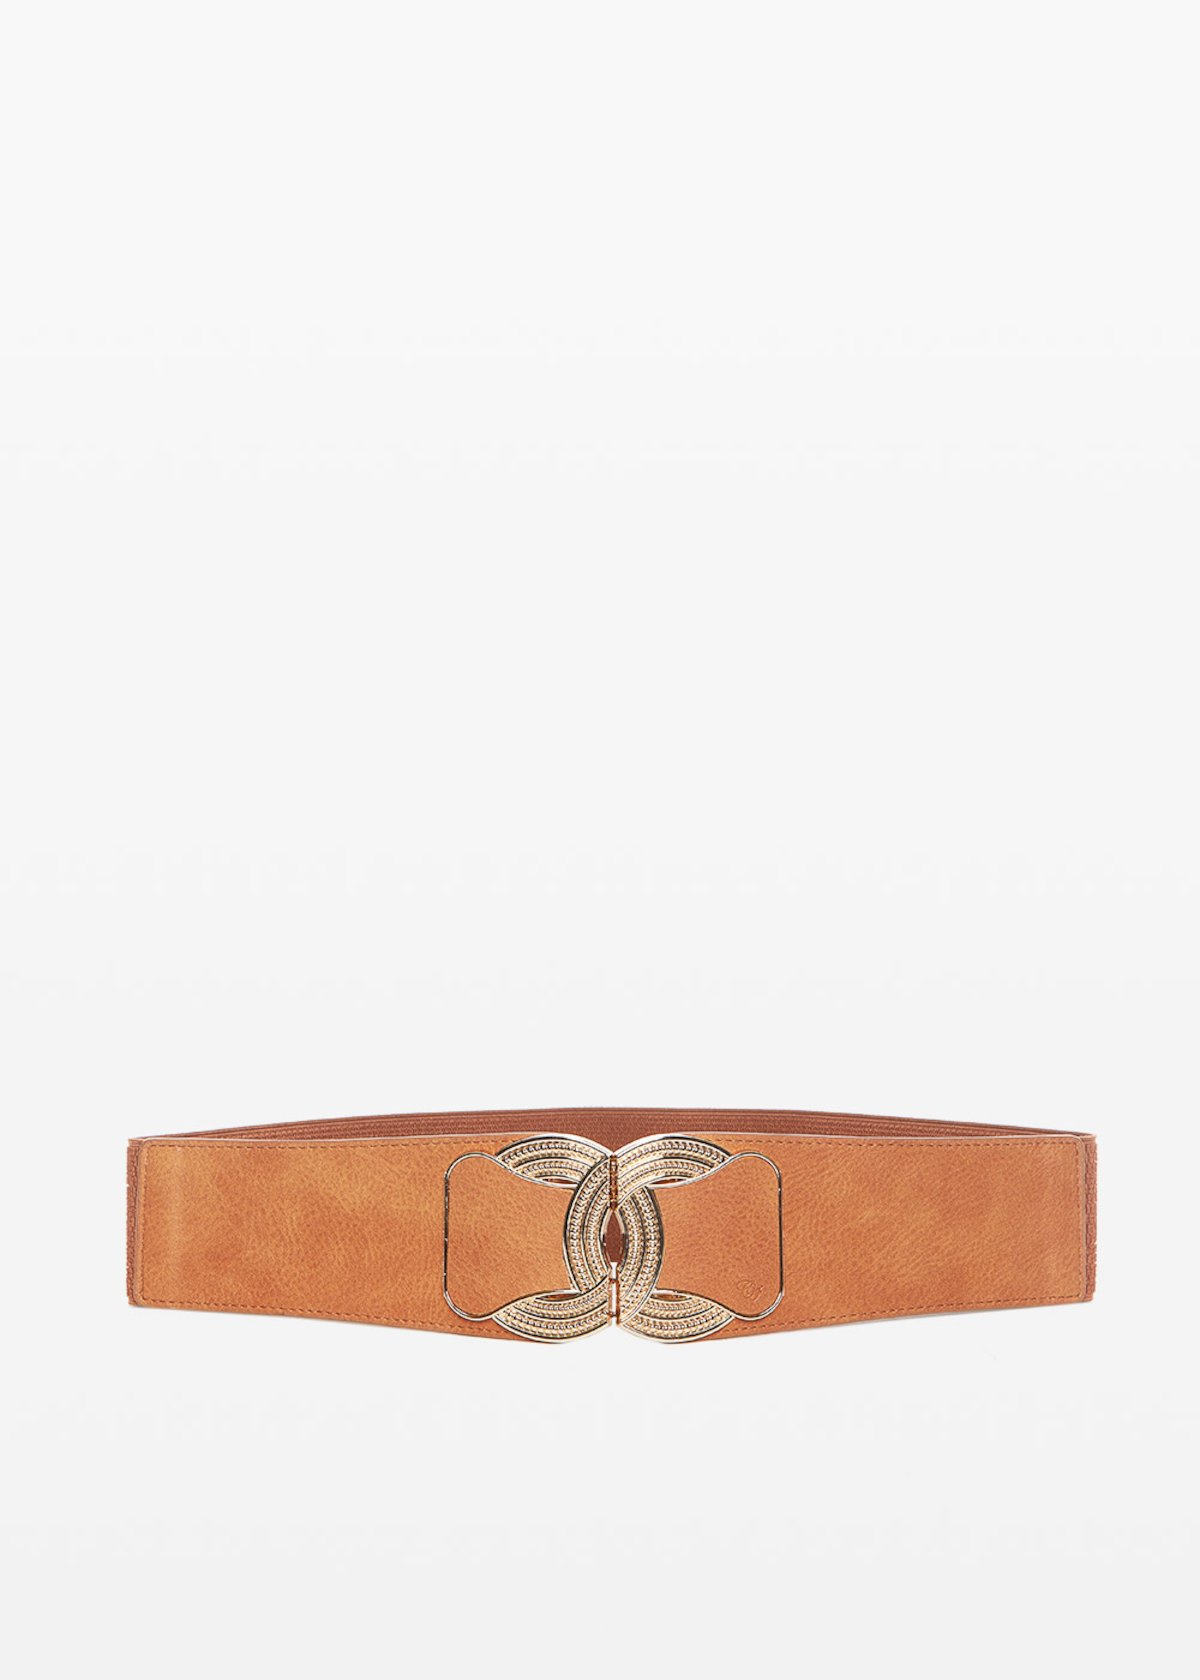 Colty faux leather belt with metal buckle